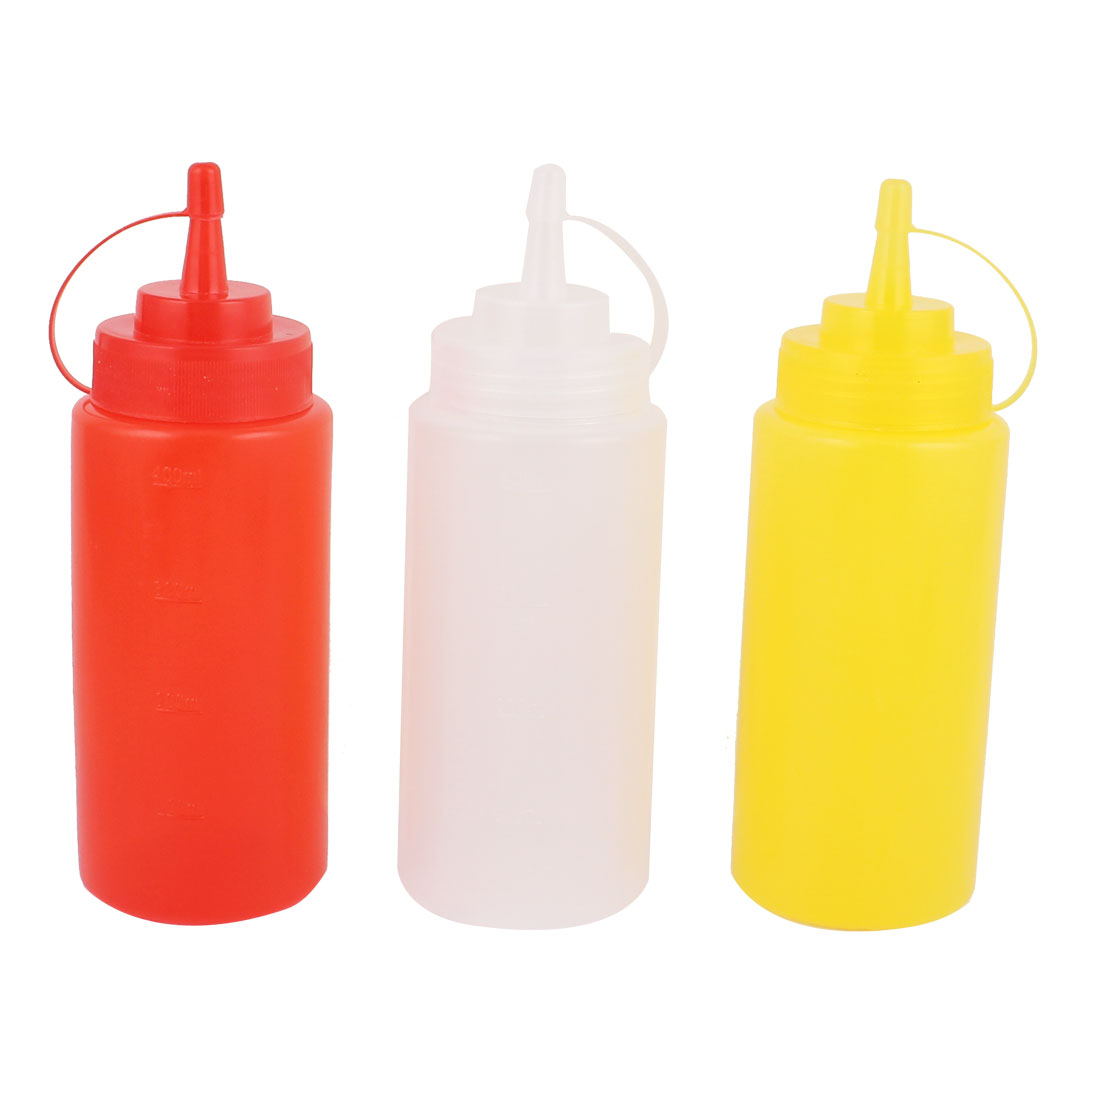 3 Pcs Kitchen 400ml Sauce Oil Ketchup Squeeze Dispenser Bottle